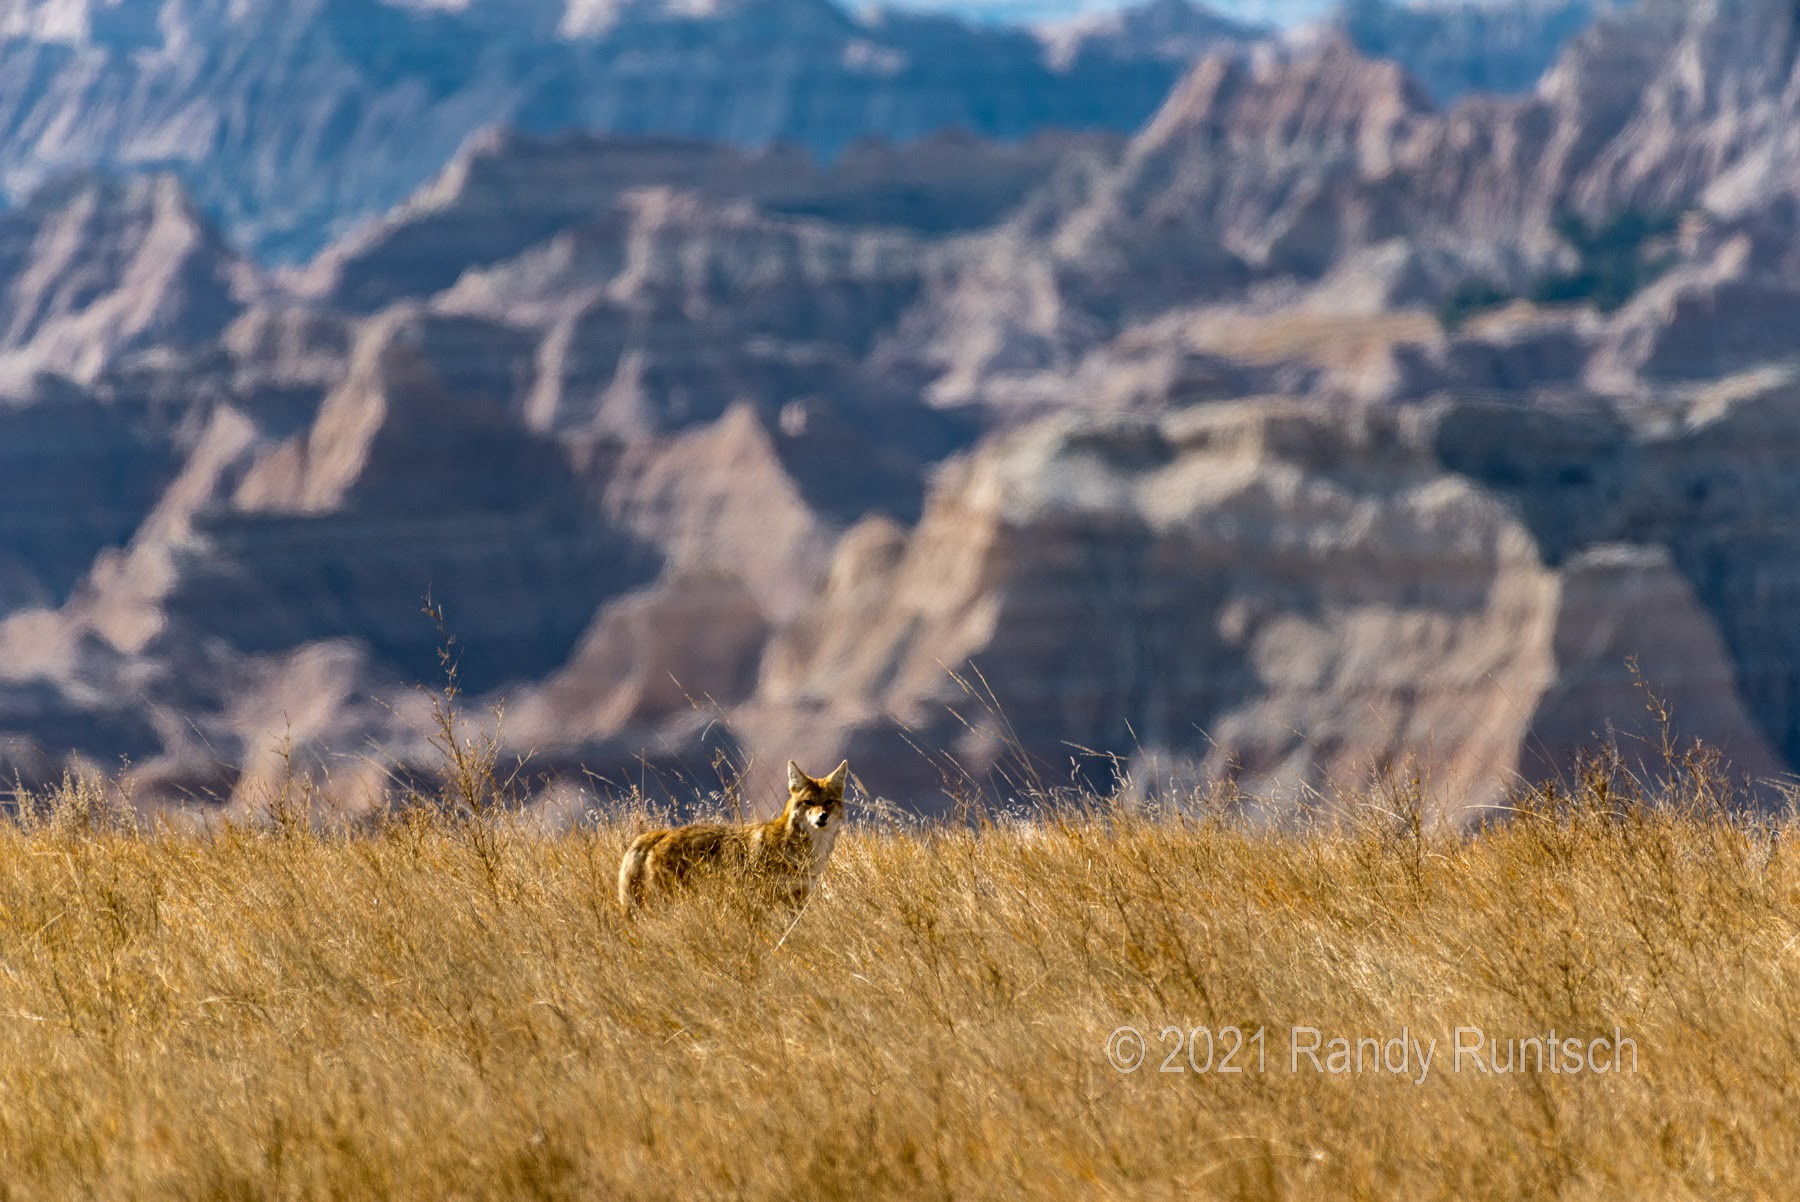 A coyote peers out from the tallgrass prairie in Badlands National Park in South Dakota.